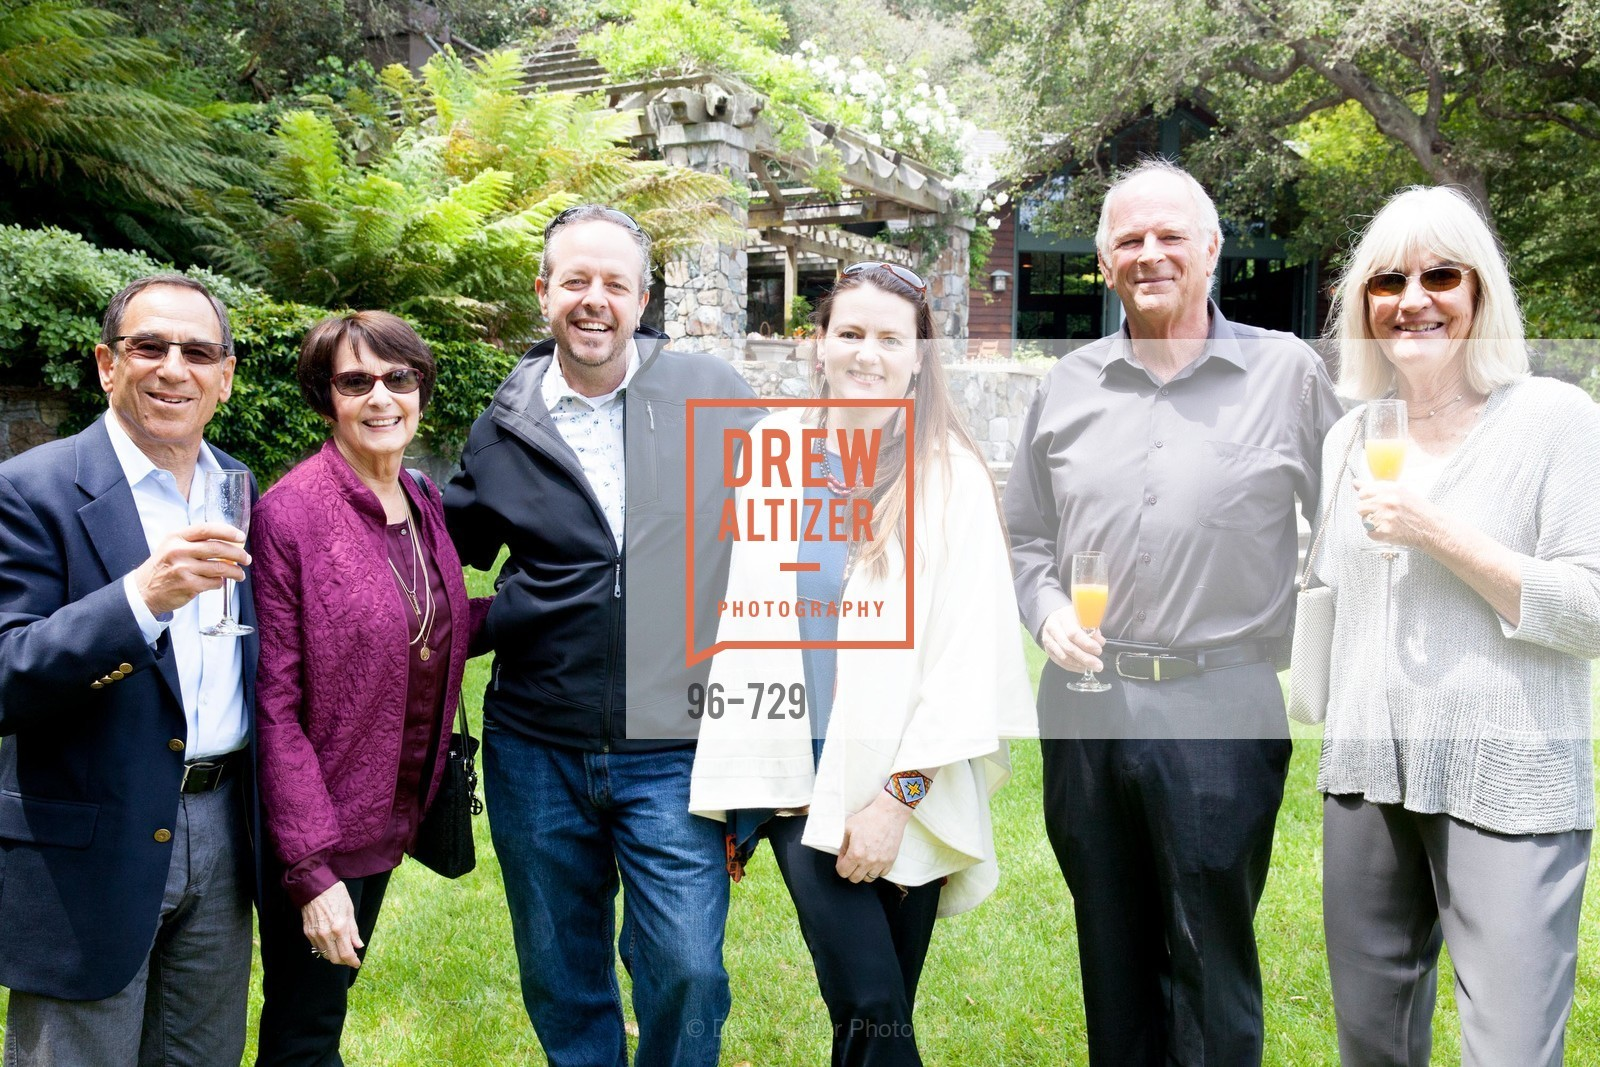 Stephen Wiel, Jacqueline Swire, Brenden Barber, Sarah McLeod, Bill Anderson, Etta Clark, THE TRUST FOR PUBLIC LAND Luncheon Hosted by THE DREVER FAMILY FOUNDATION, US, May 15th, 2015,Drew Altizer, Drew Altizer Photography, full-service agency, private events, San Francisco photographer, photographer california